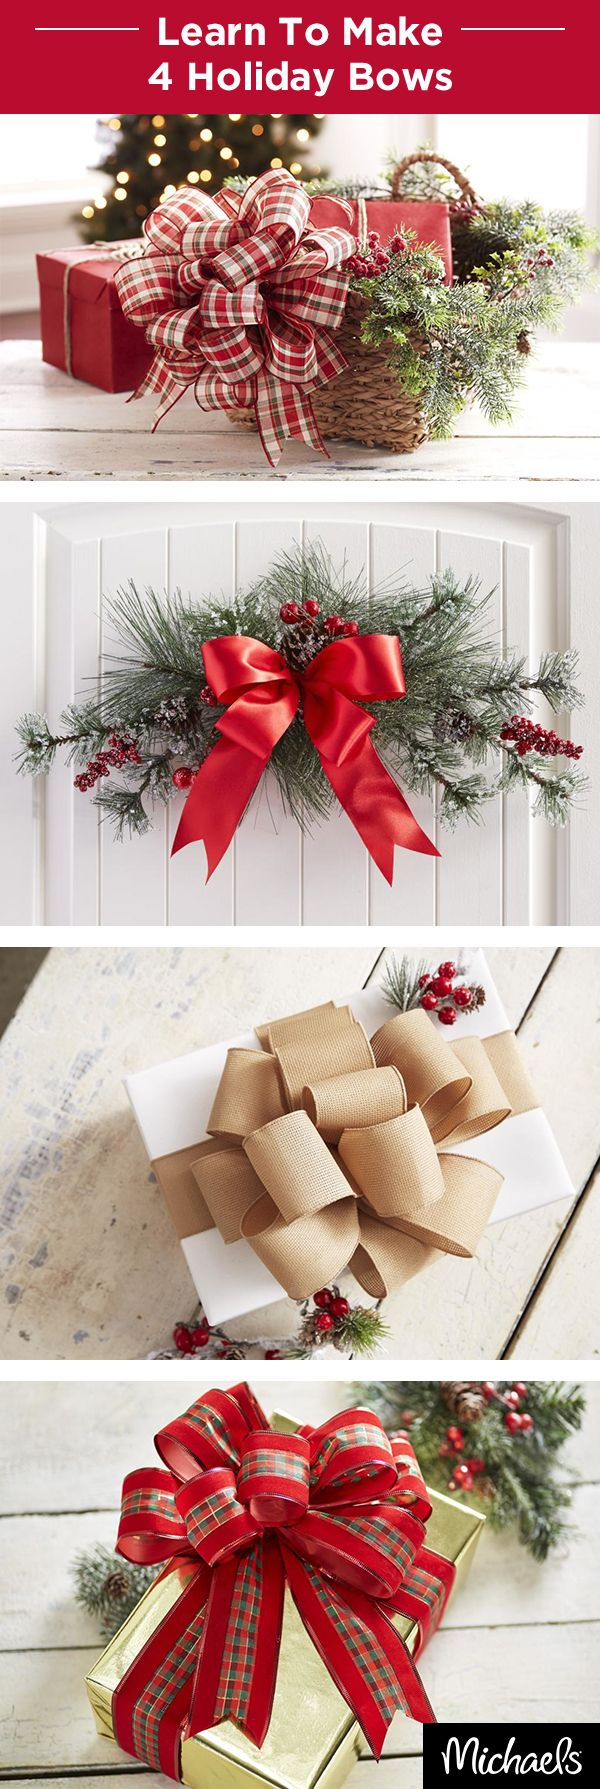 Step-by-step instruction on making holiday bows for girls with their own hands